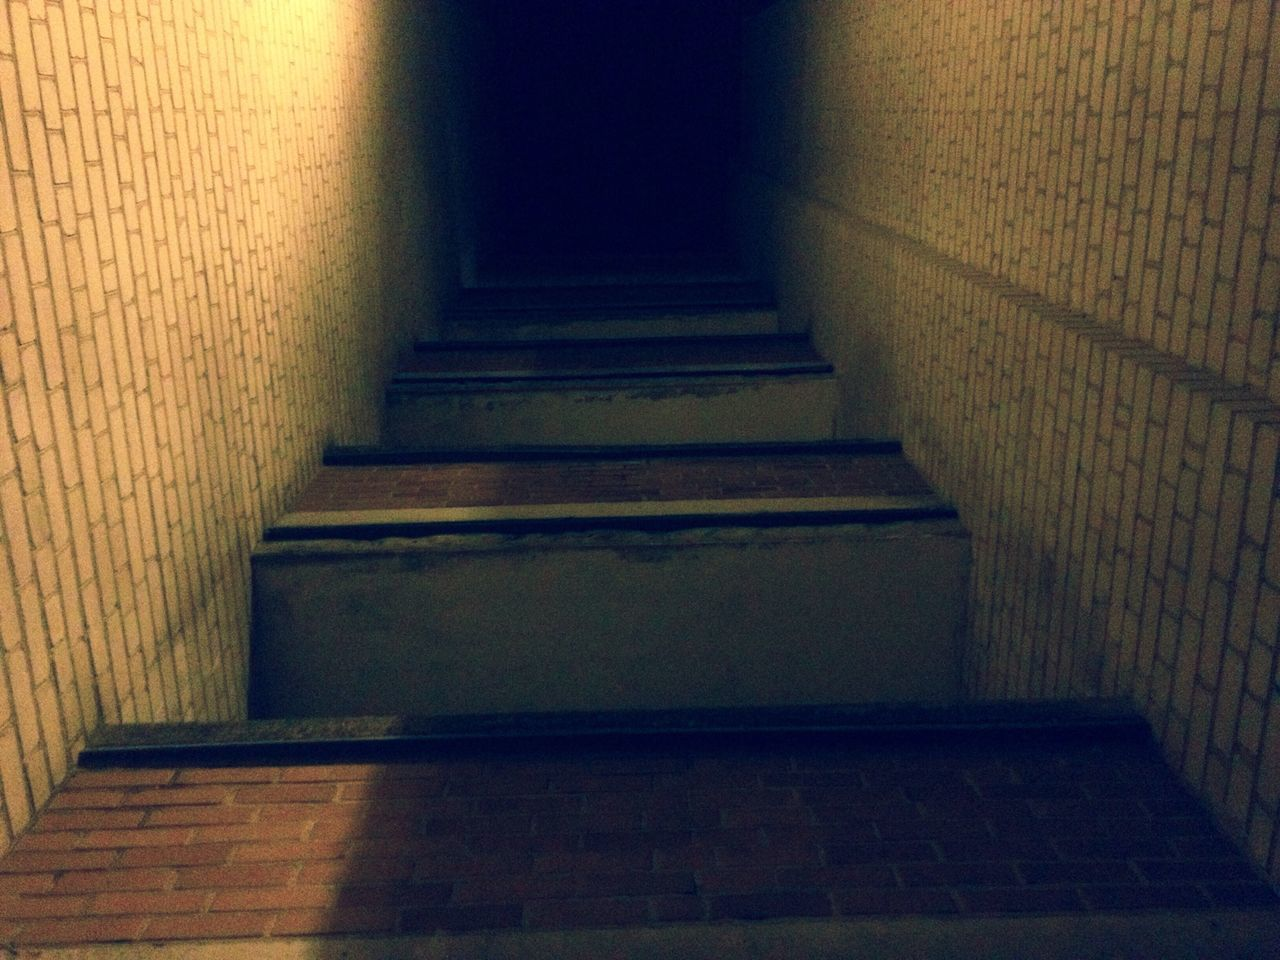 indoors, steps, steps and staircases, no people, illuminated, architecture, day